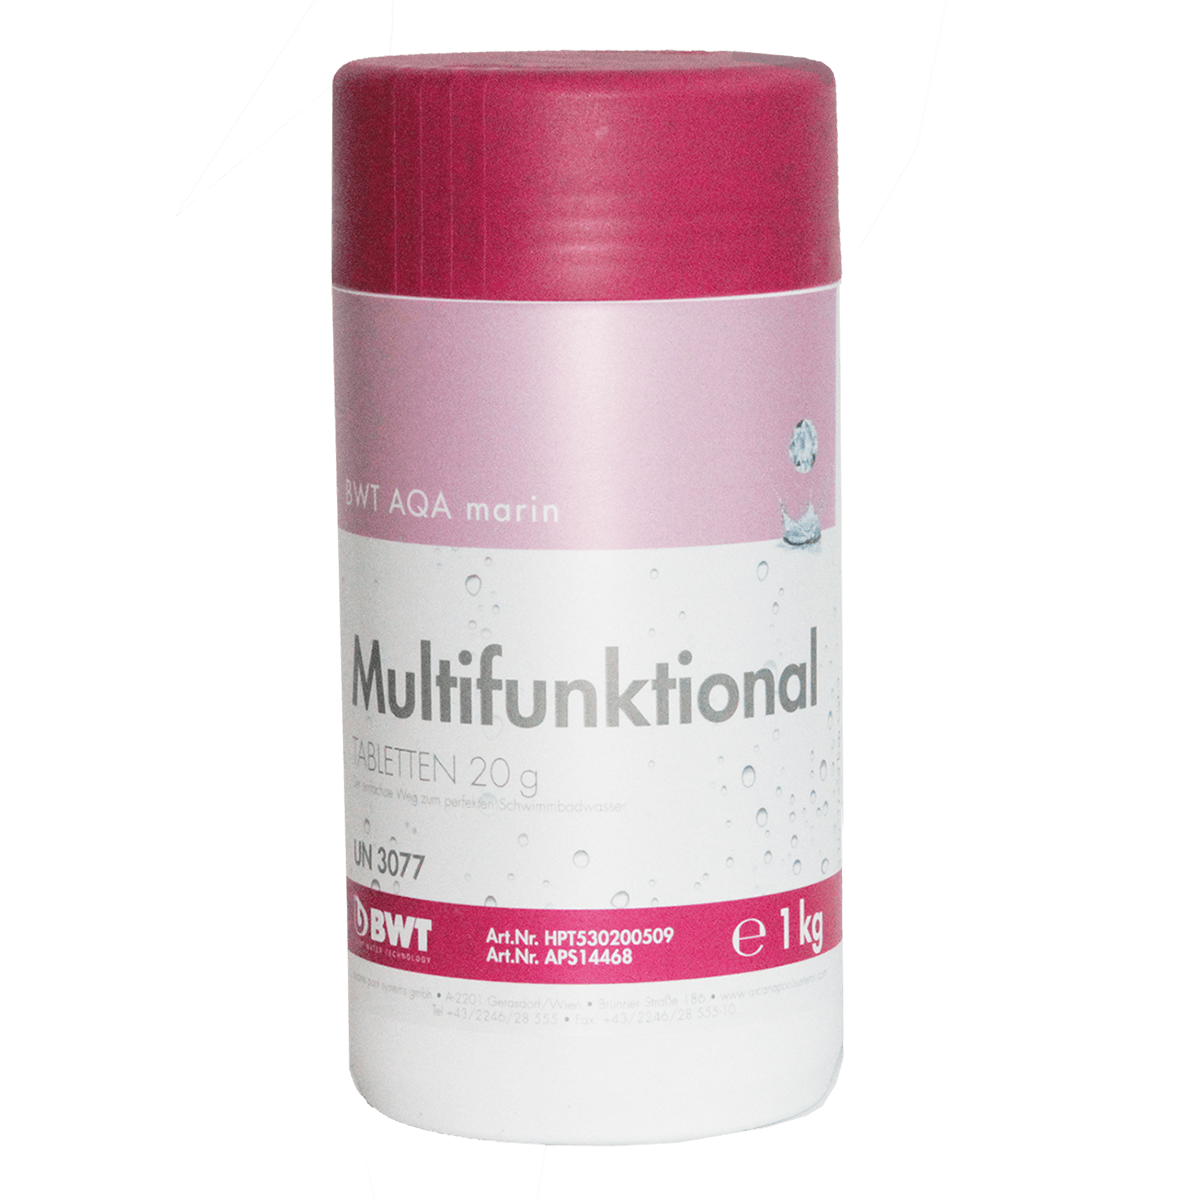 BWT AQA marin Multifunktional Tabletten 20 гр, 1 кг